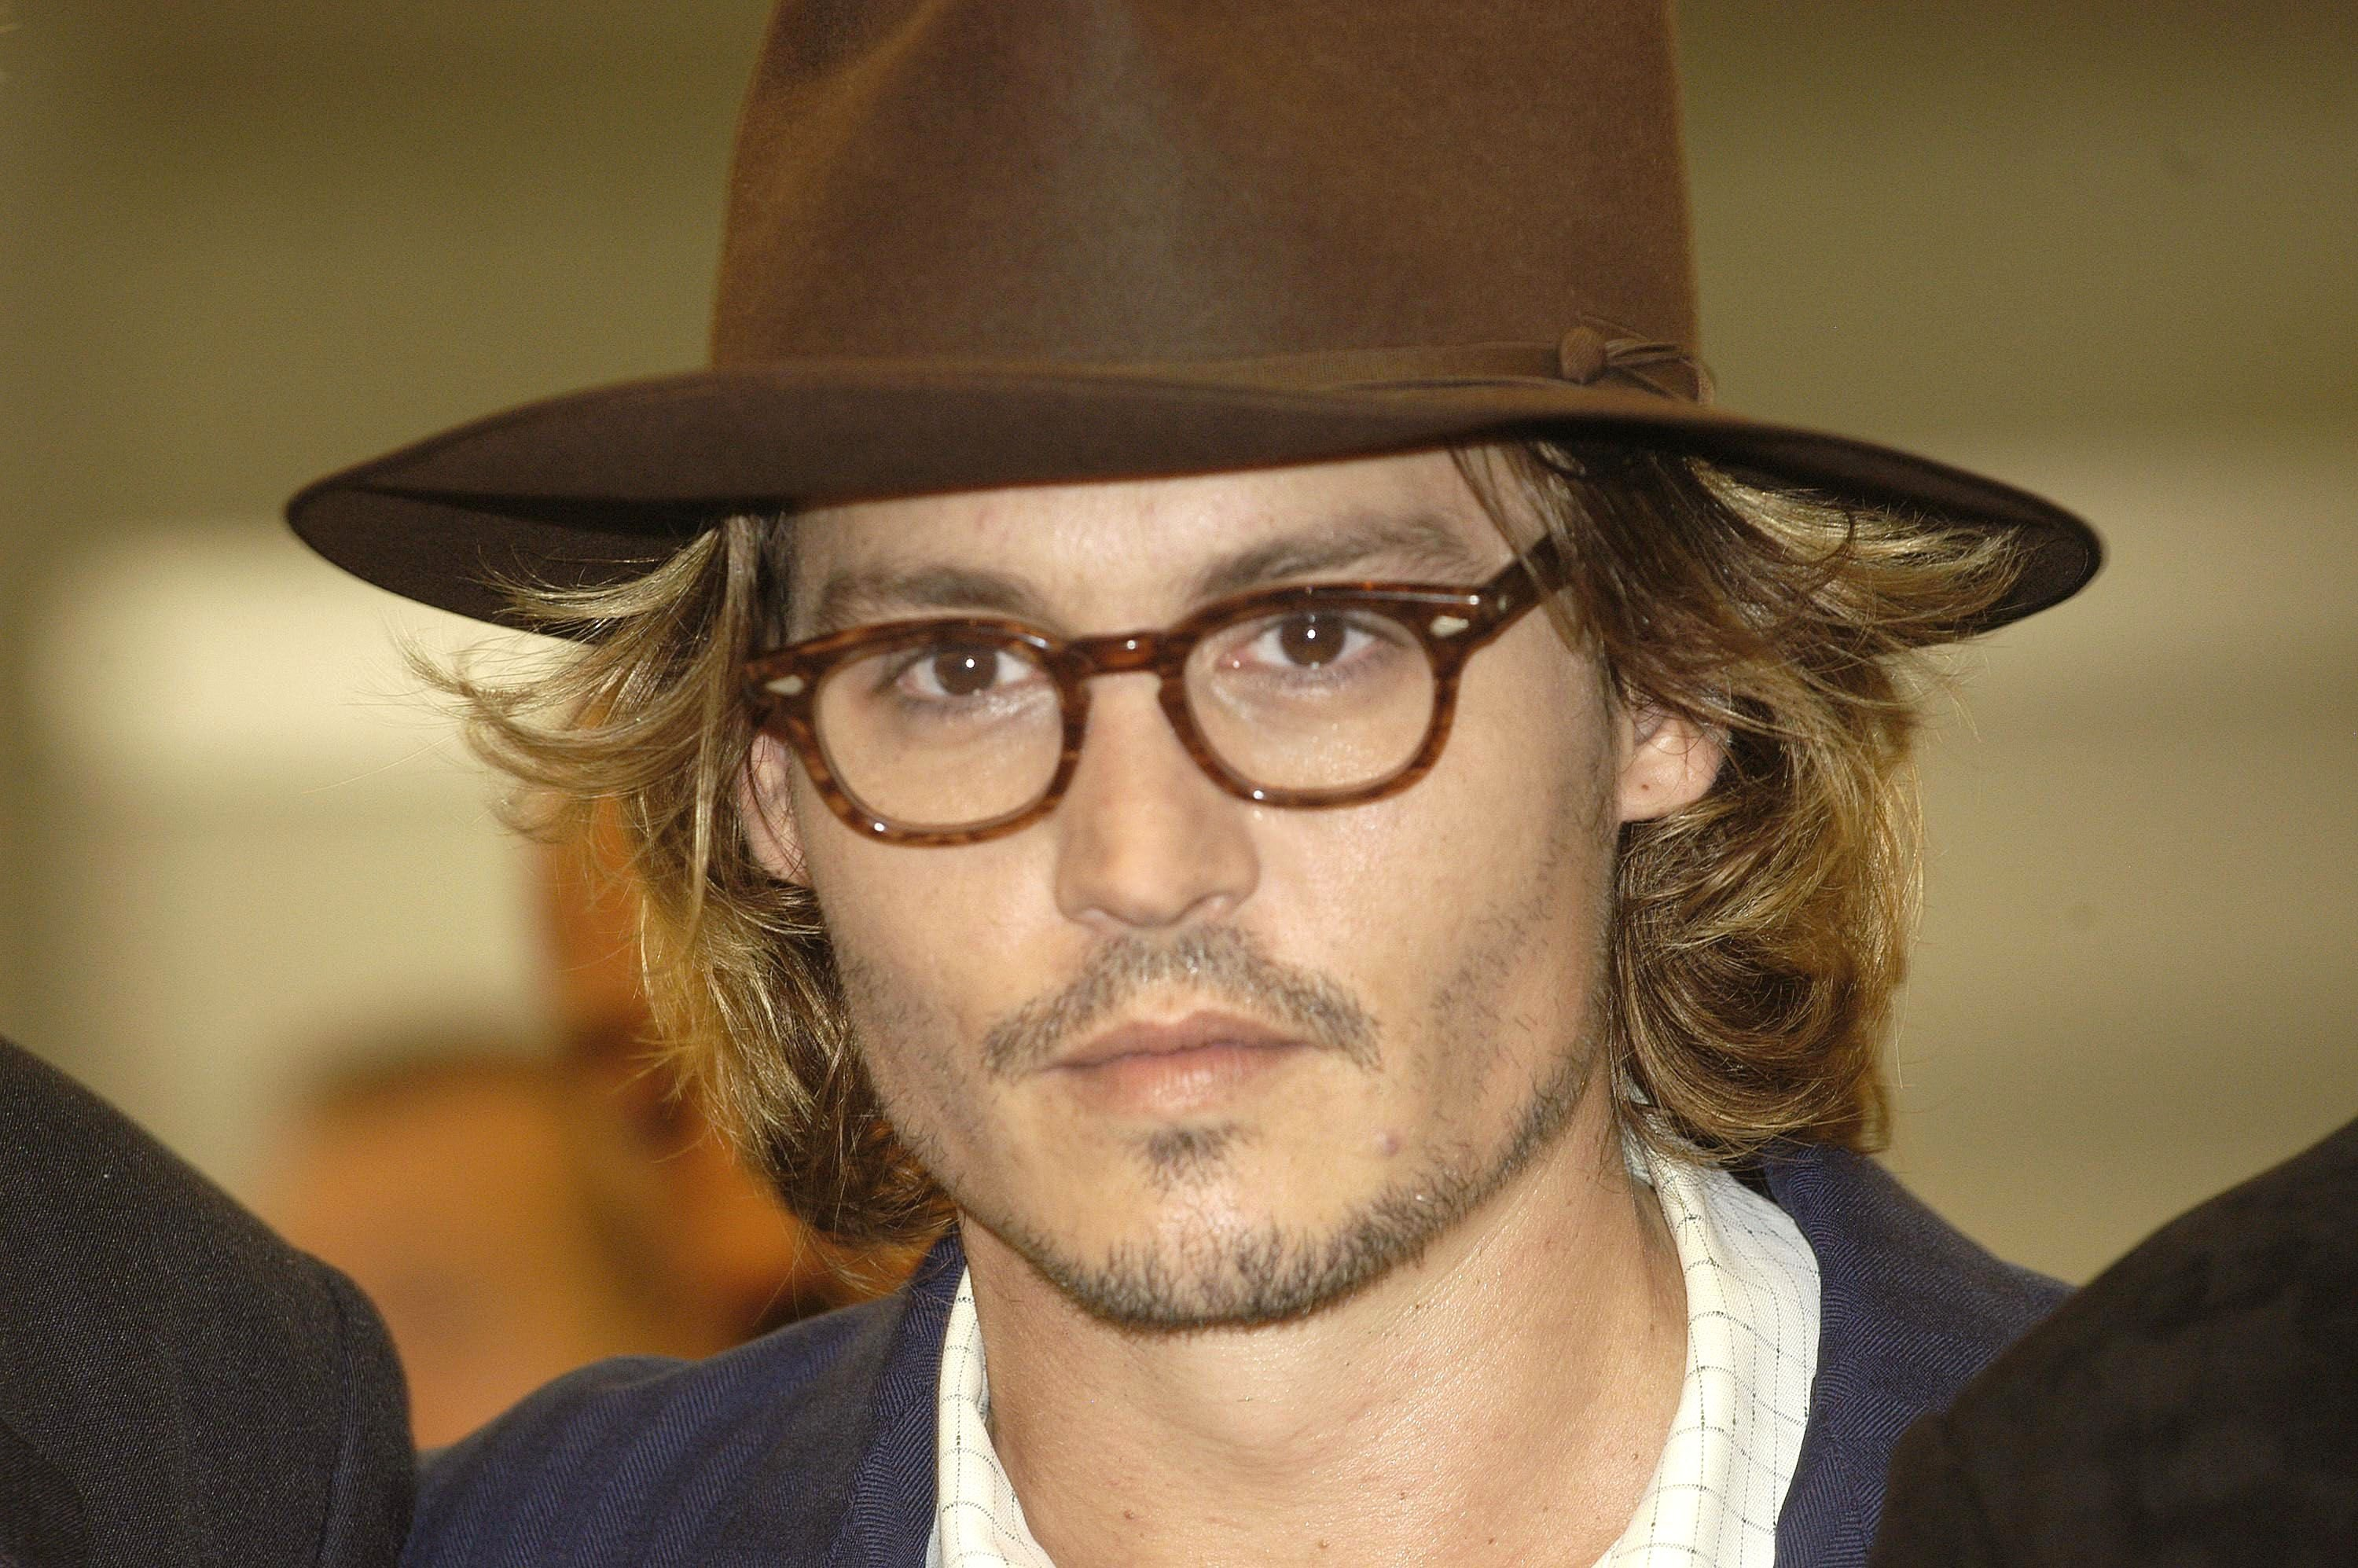 Johnny Depp had an uneasy childhood / Getty Images